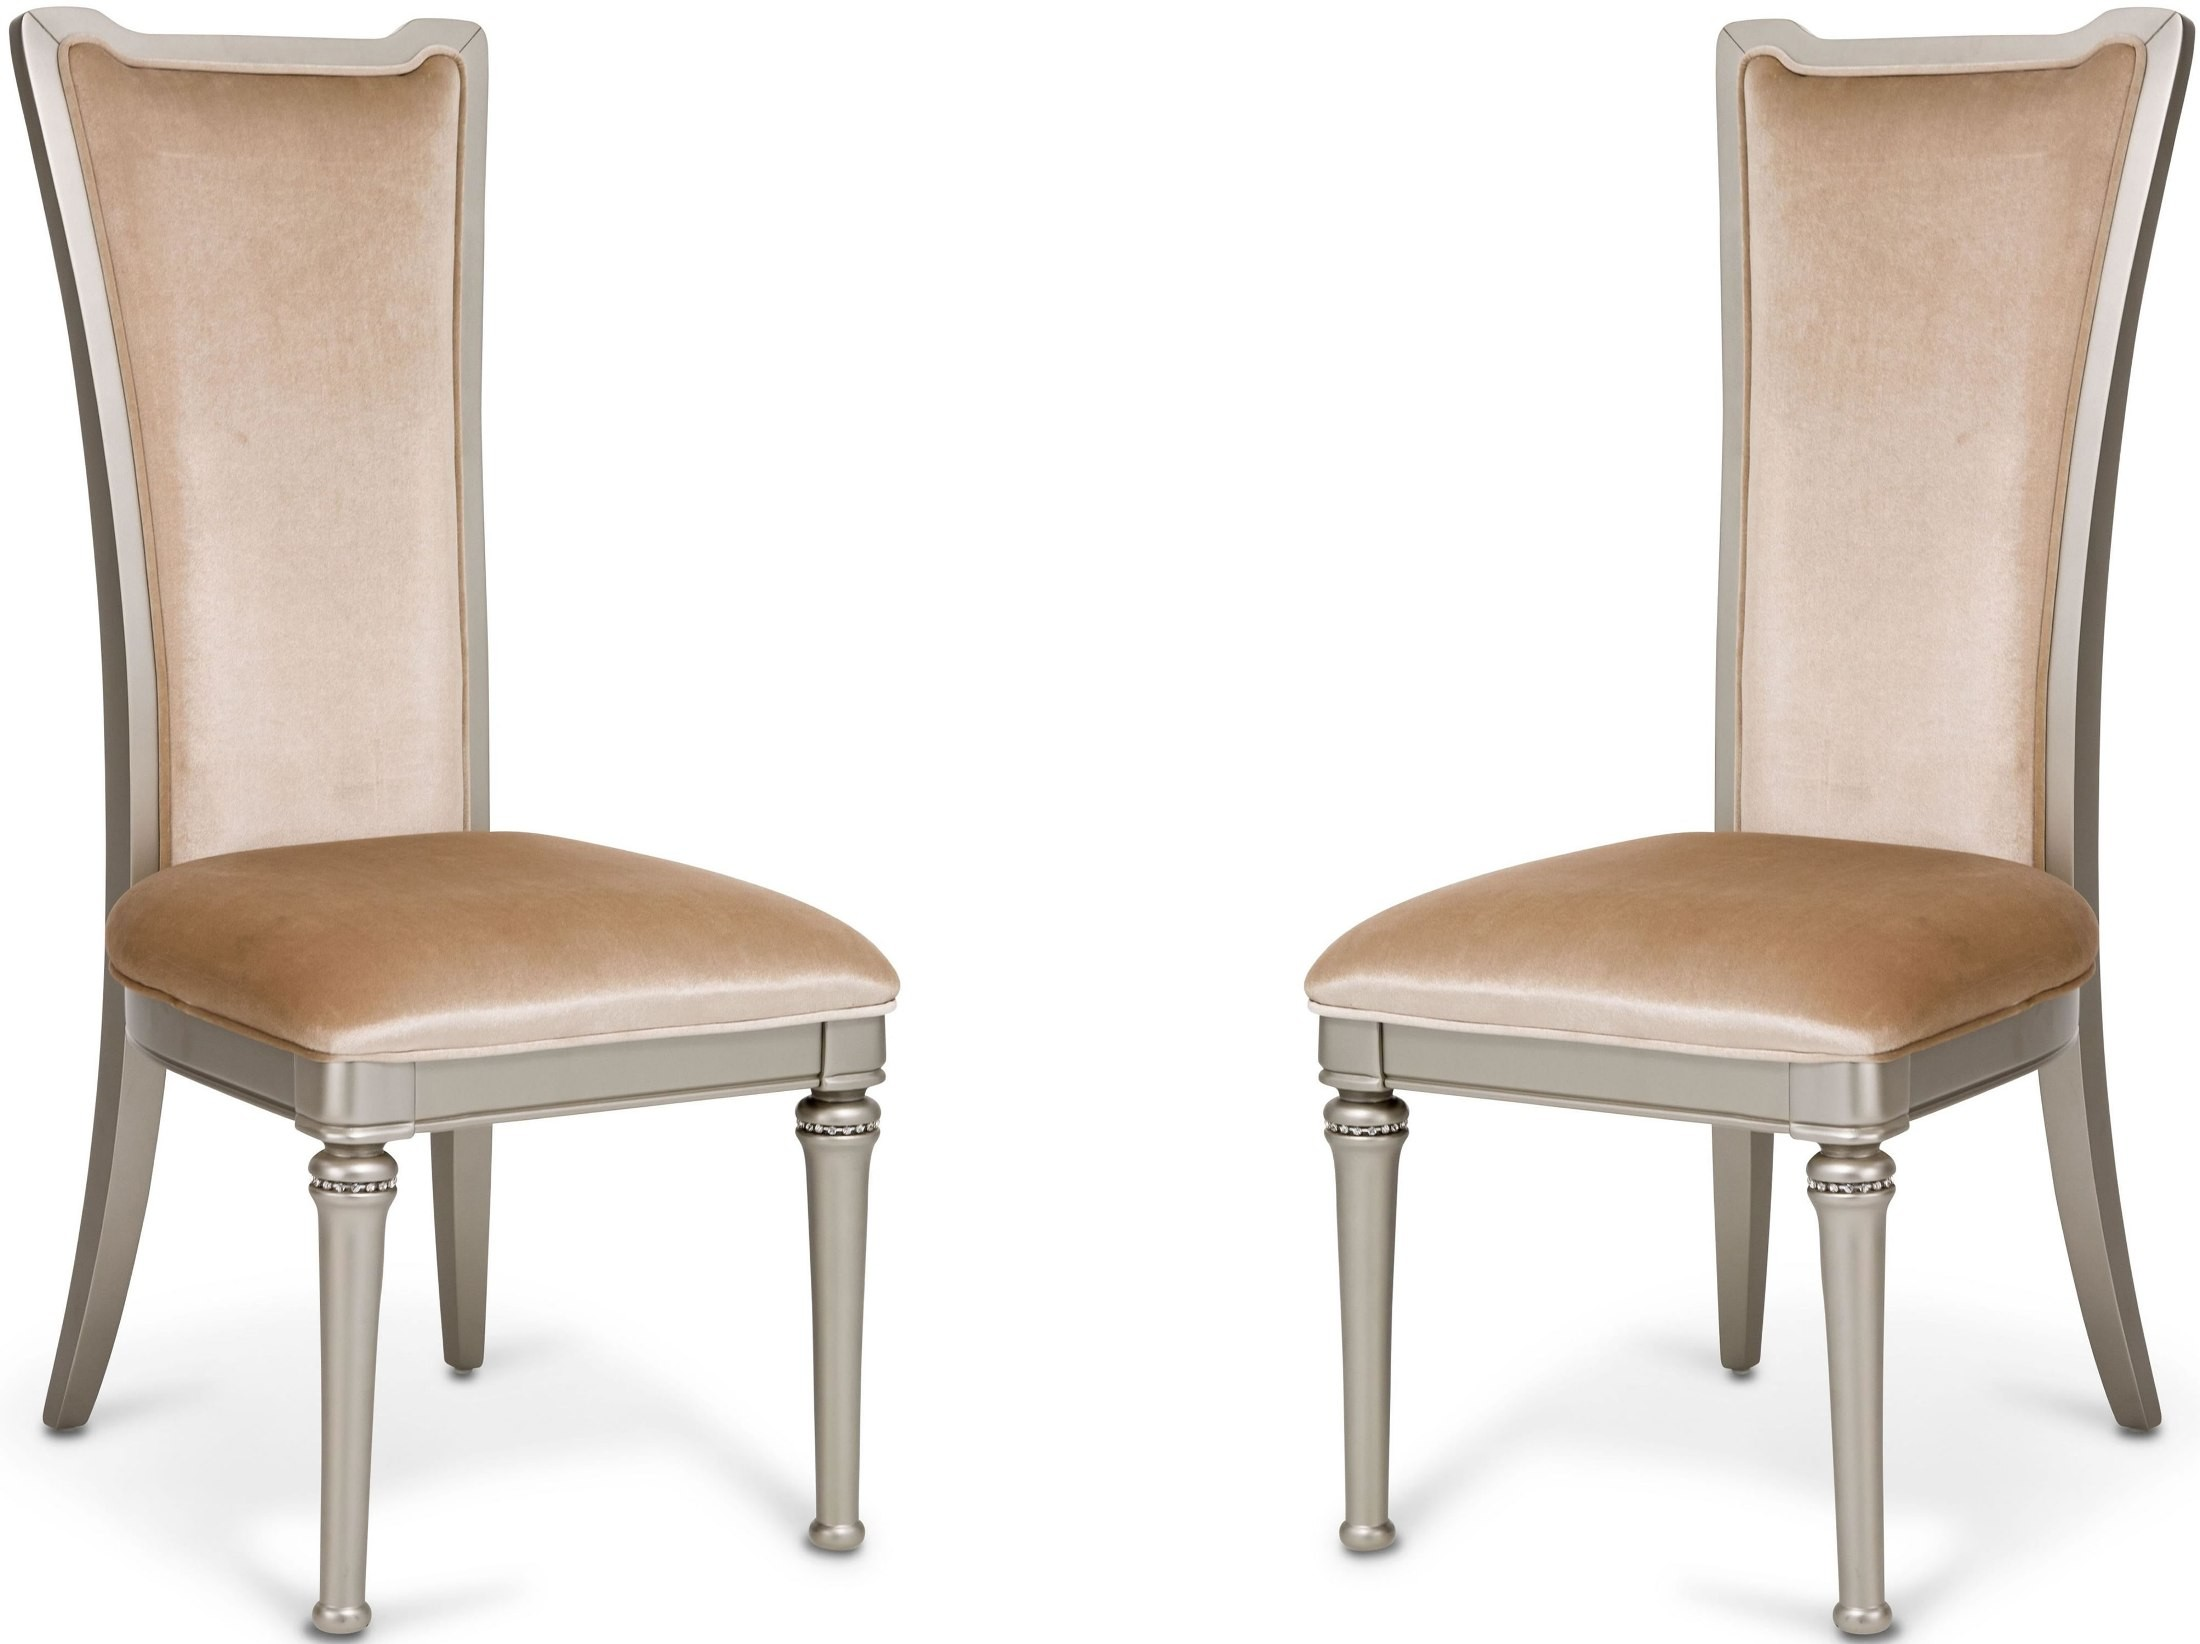 Bel Air Park Champagne Side Chair 201 AICO